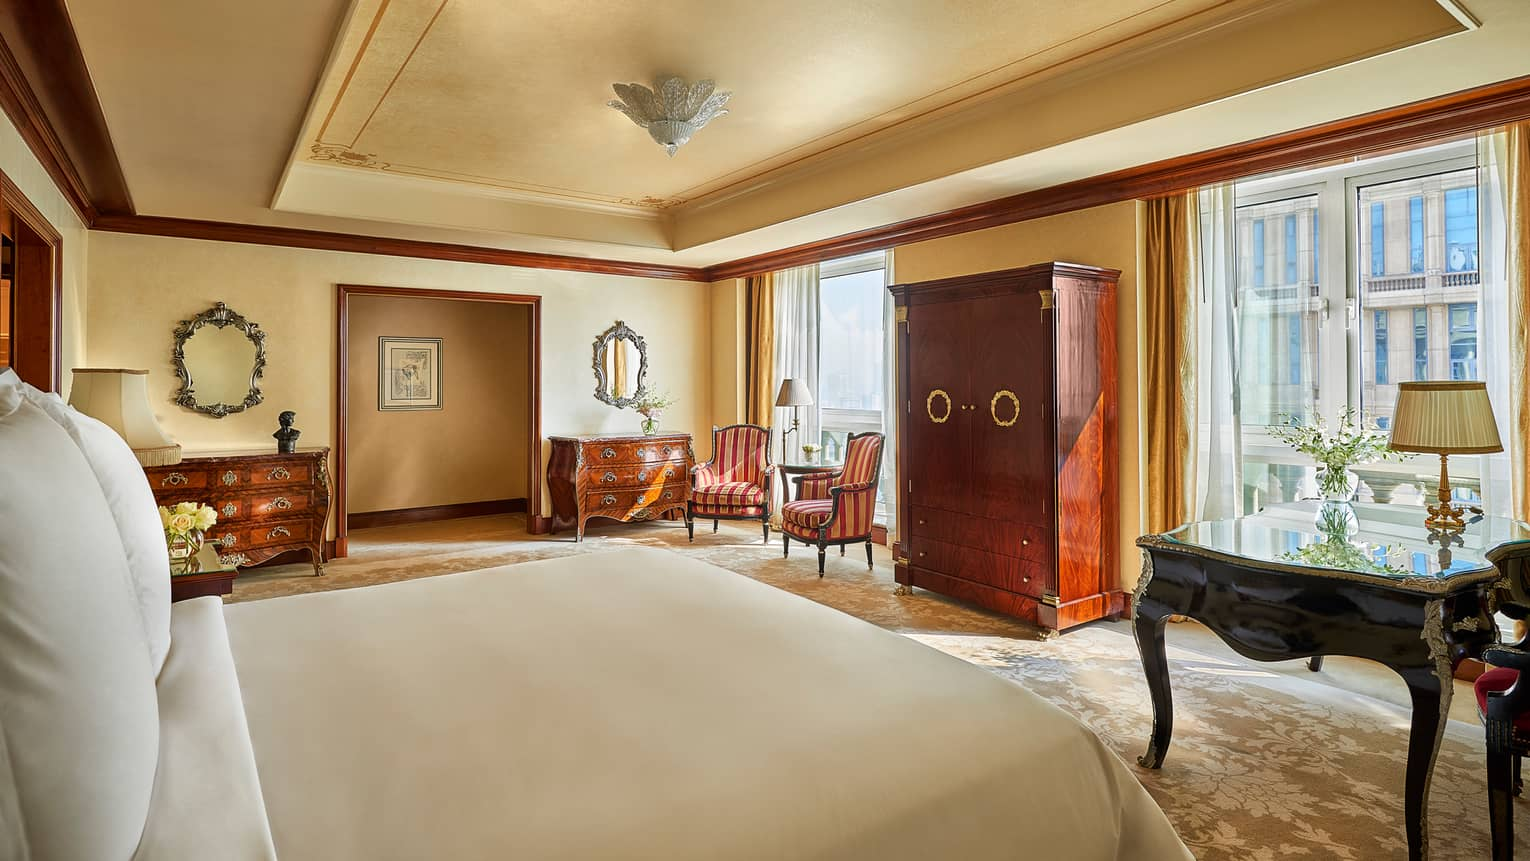 Hotel room bed across from two sunny floor-to-ceiling glass doors, antique-style wood dressers, armchairs